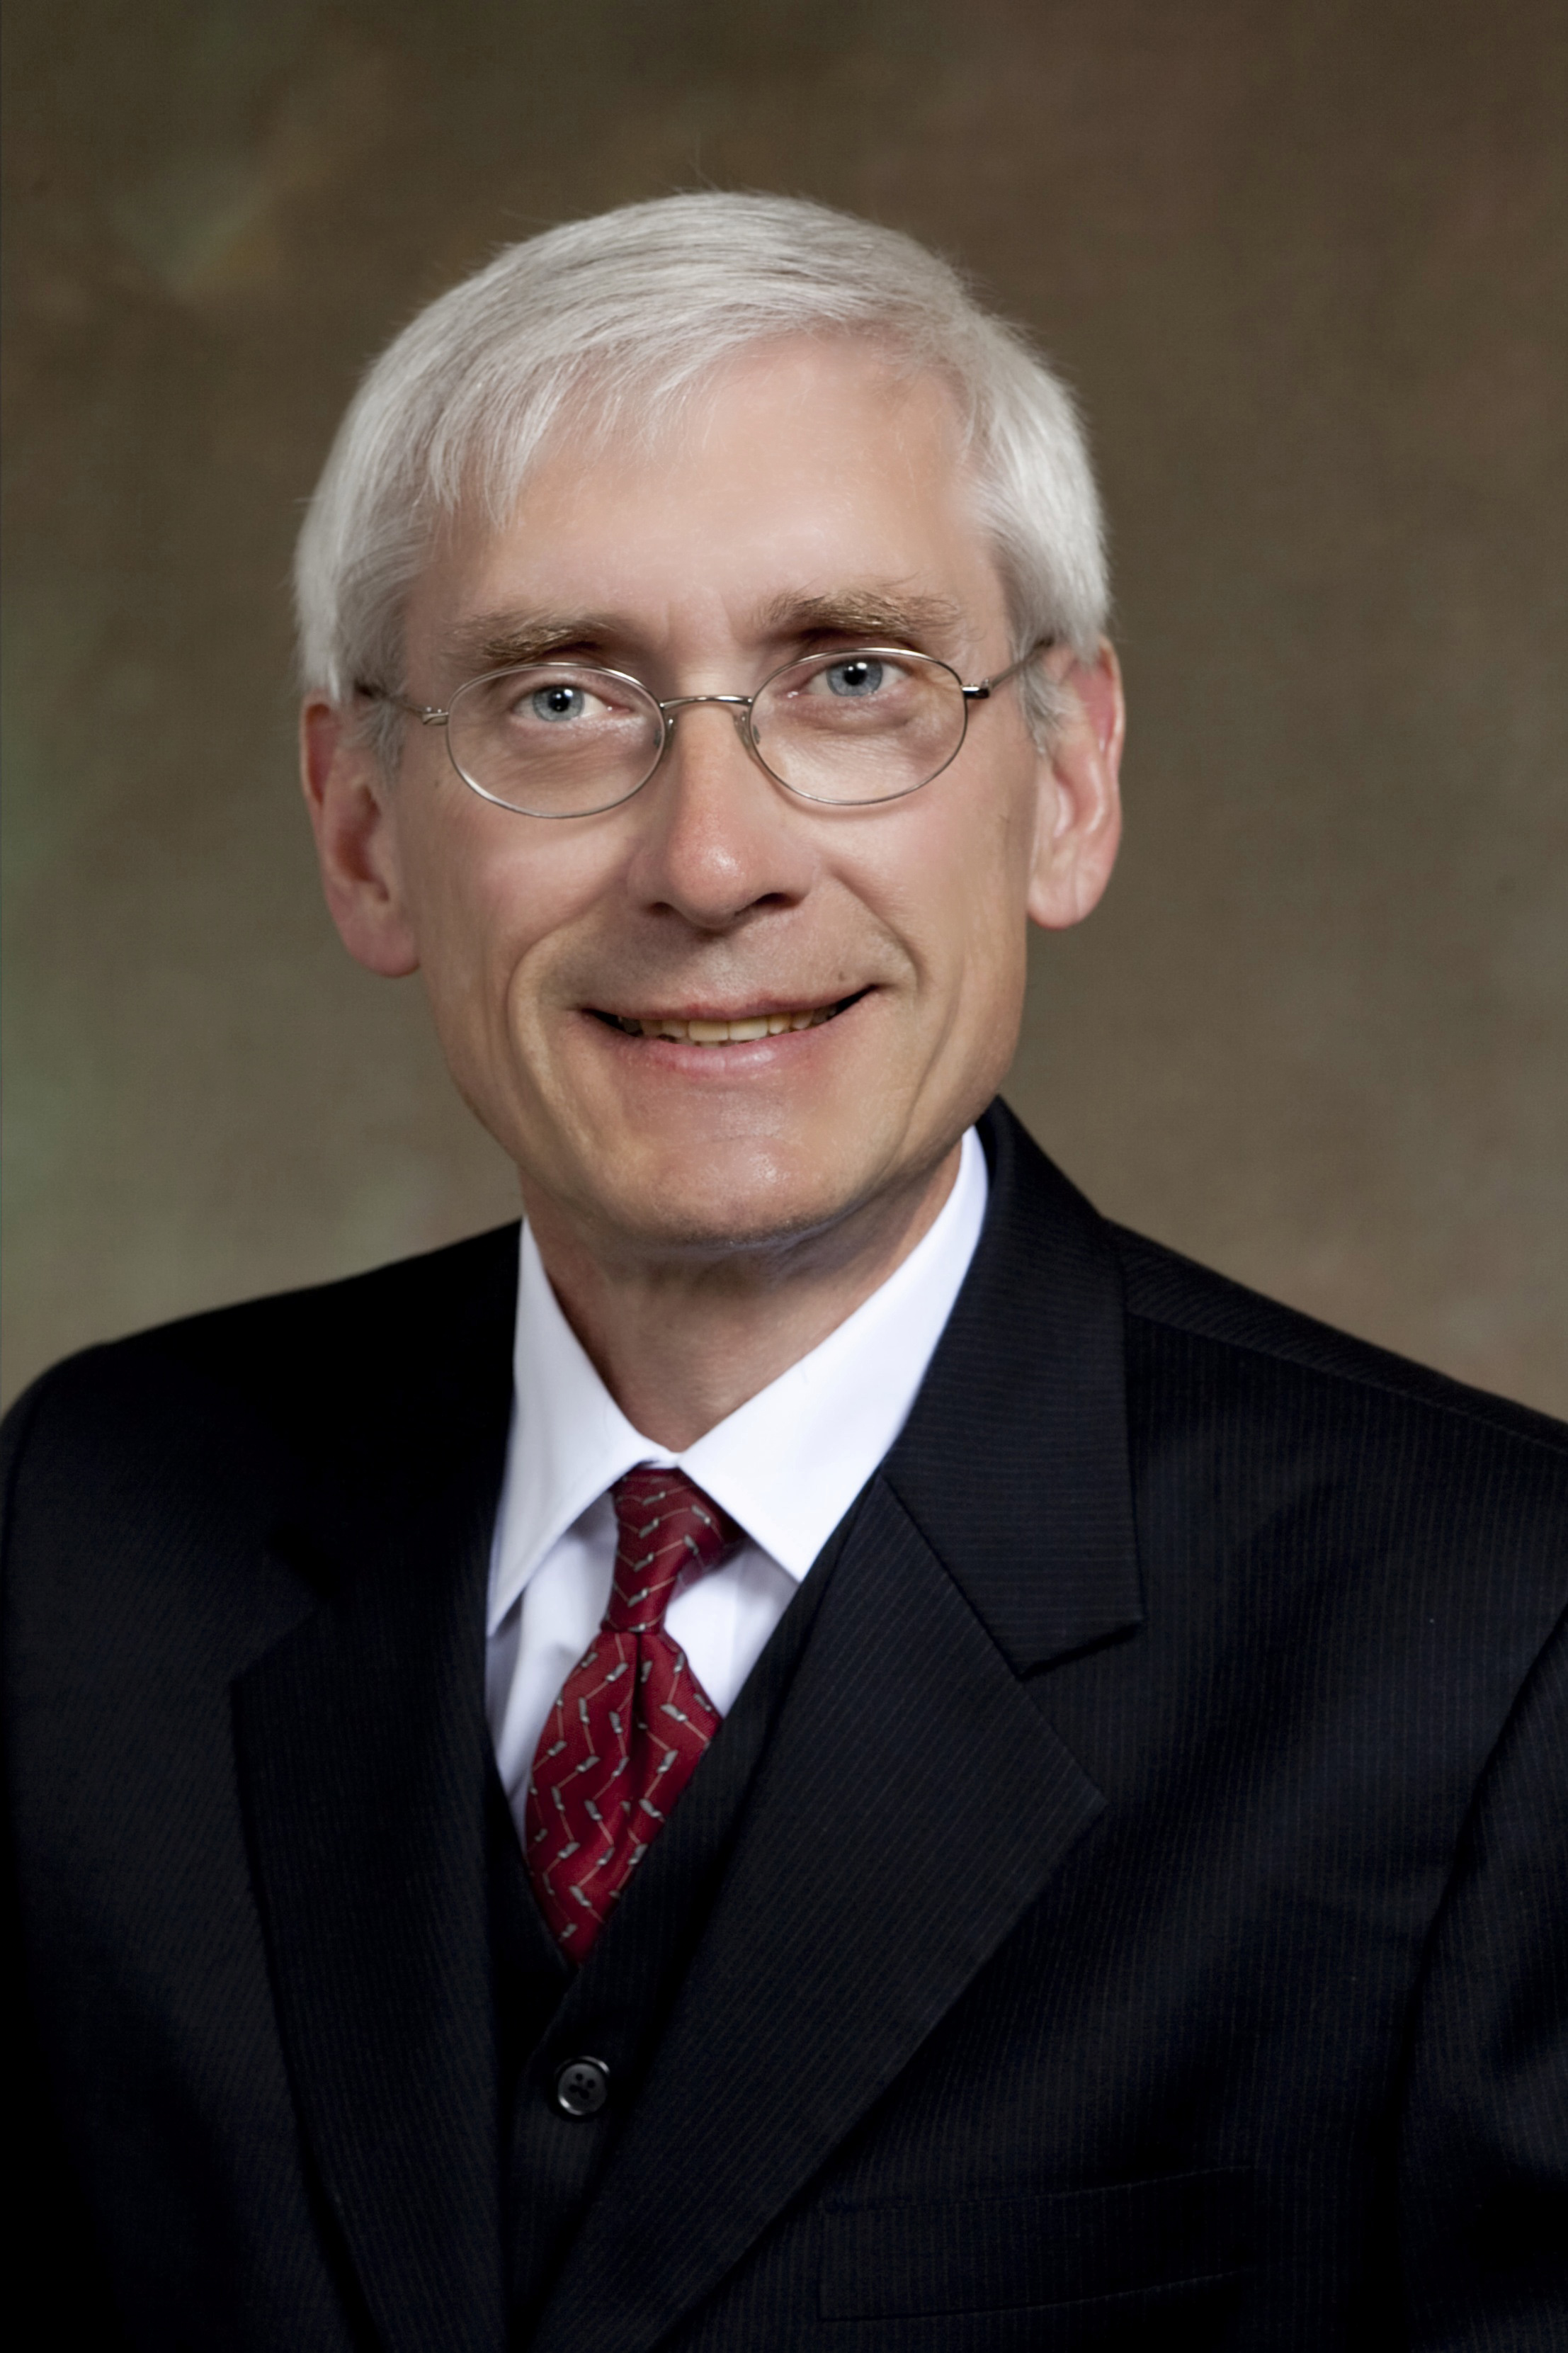 Governor-elect Evers Announces Additional Cabinet Appointments